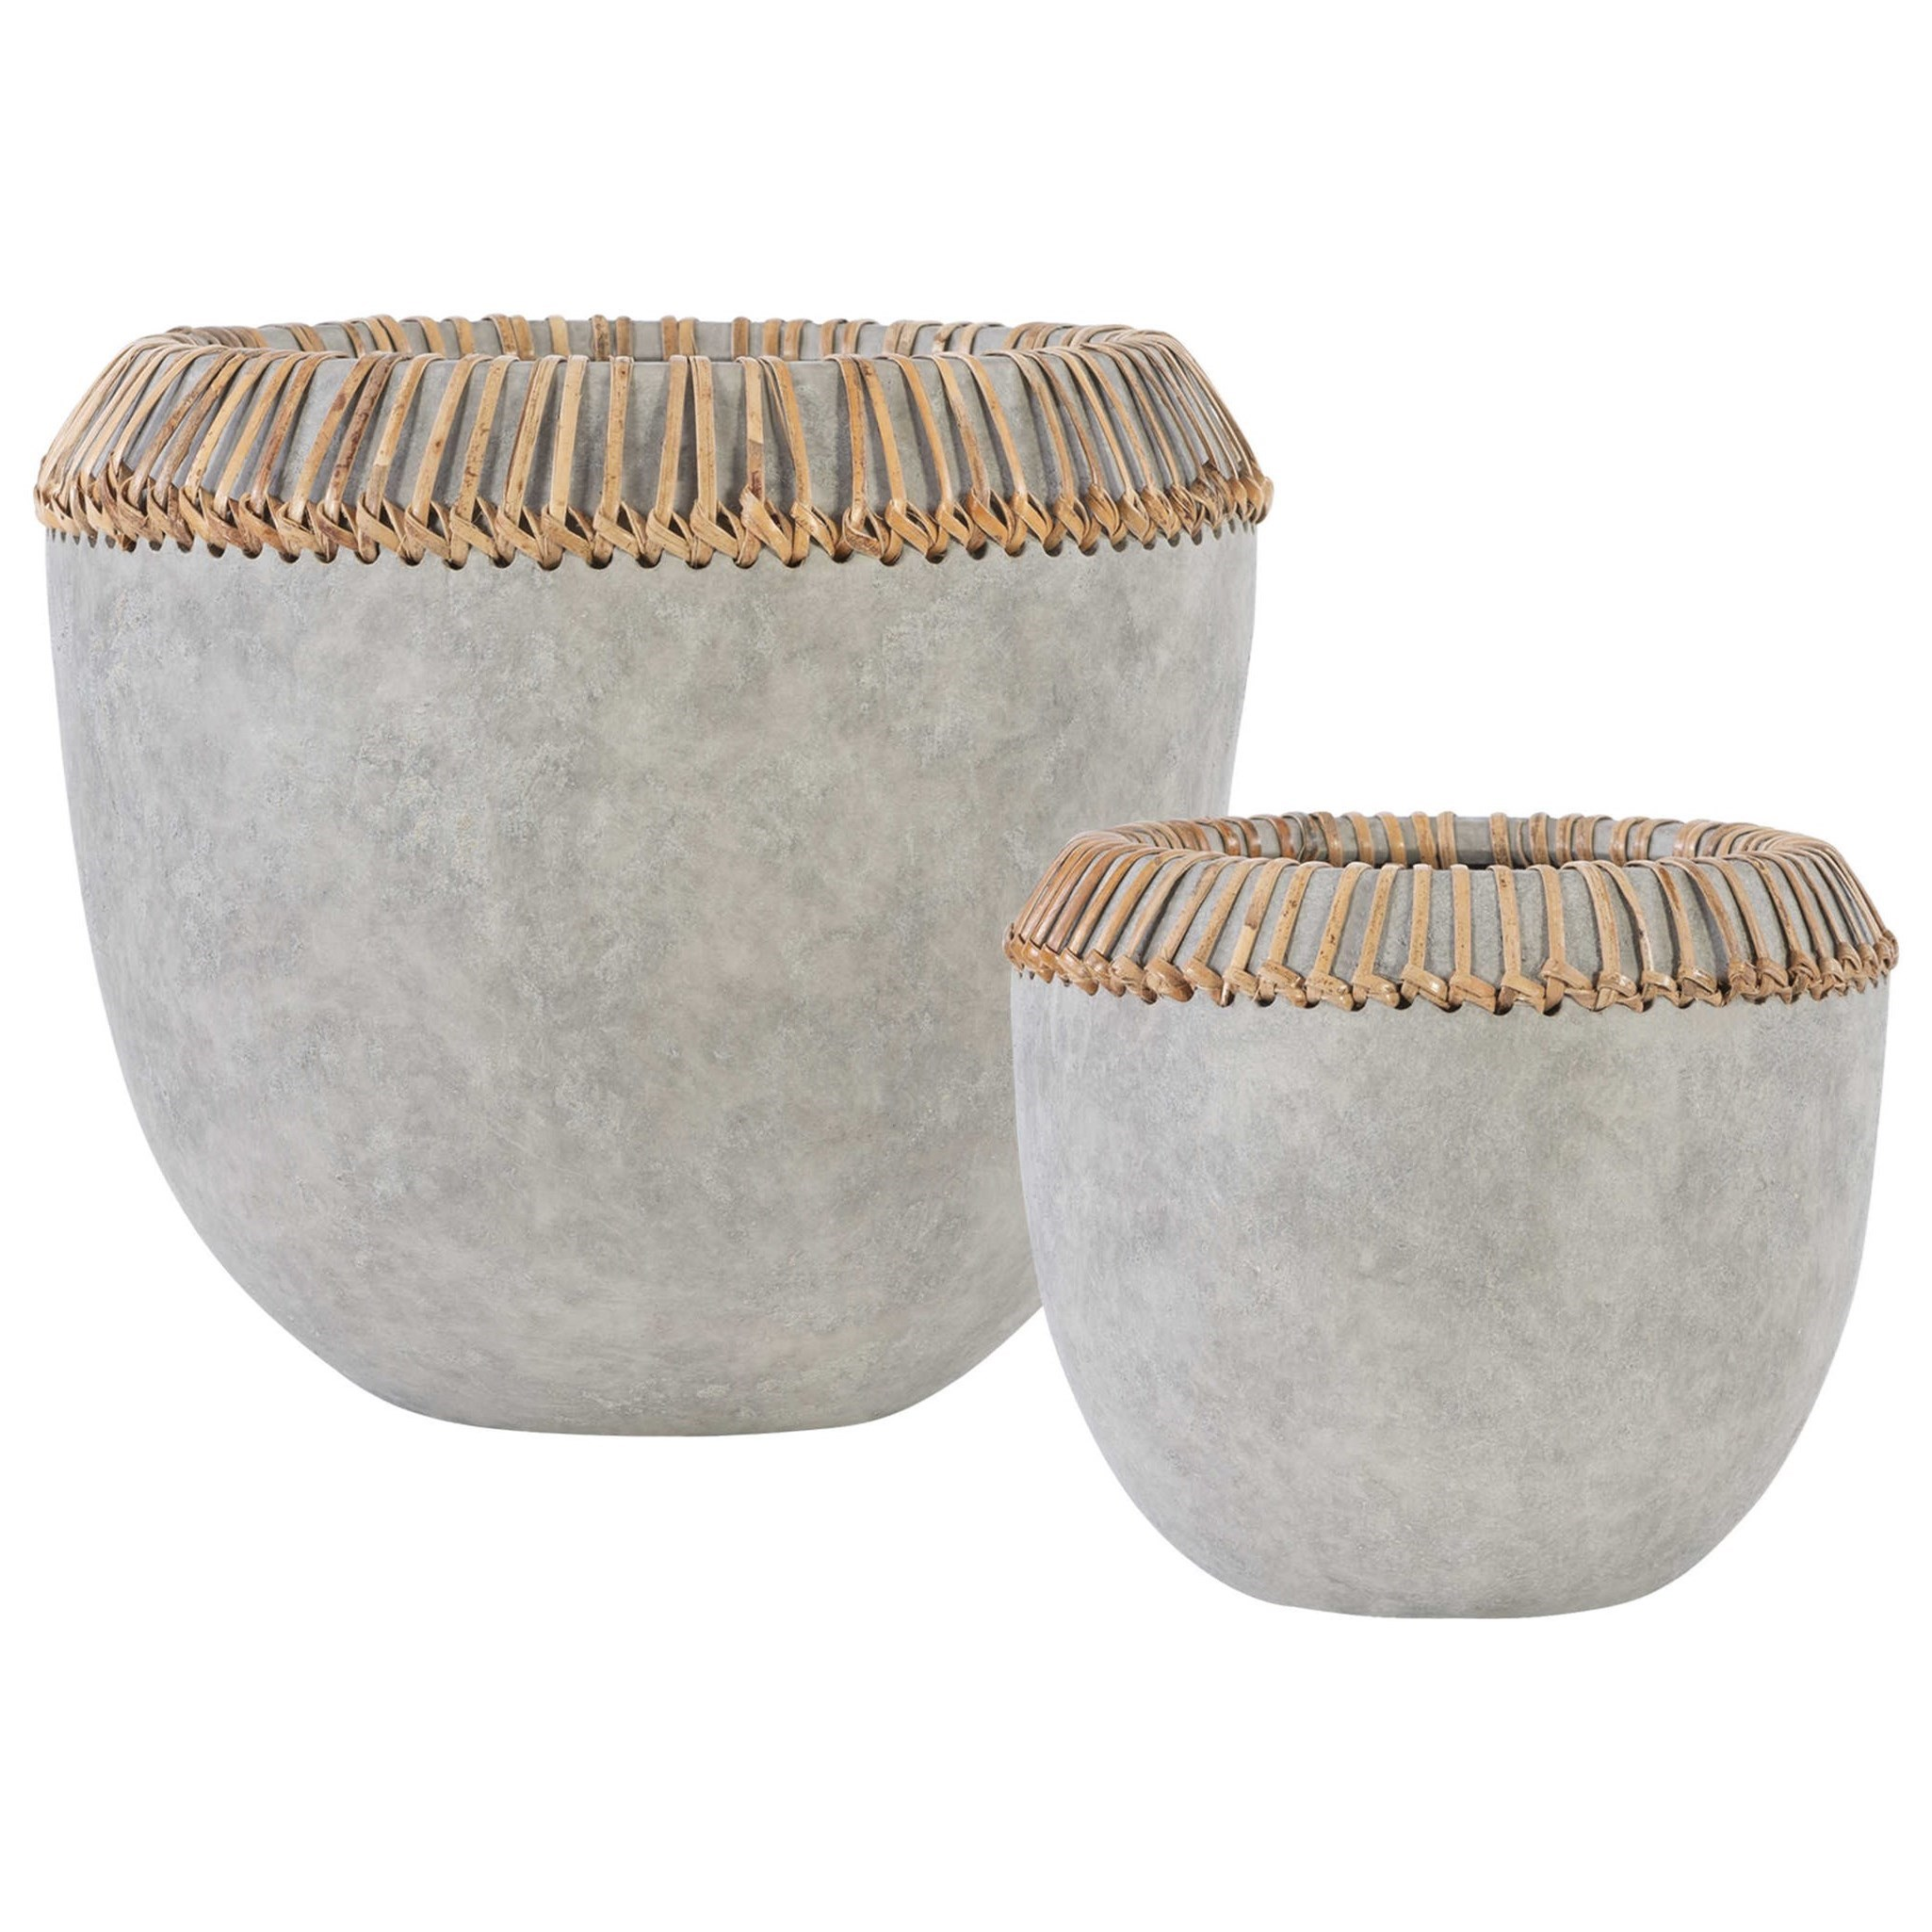 Accessories Aponi Concrete Ray Bowls, S/2 by Uttermost at Upper Room Home Furnishings